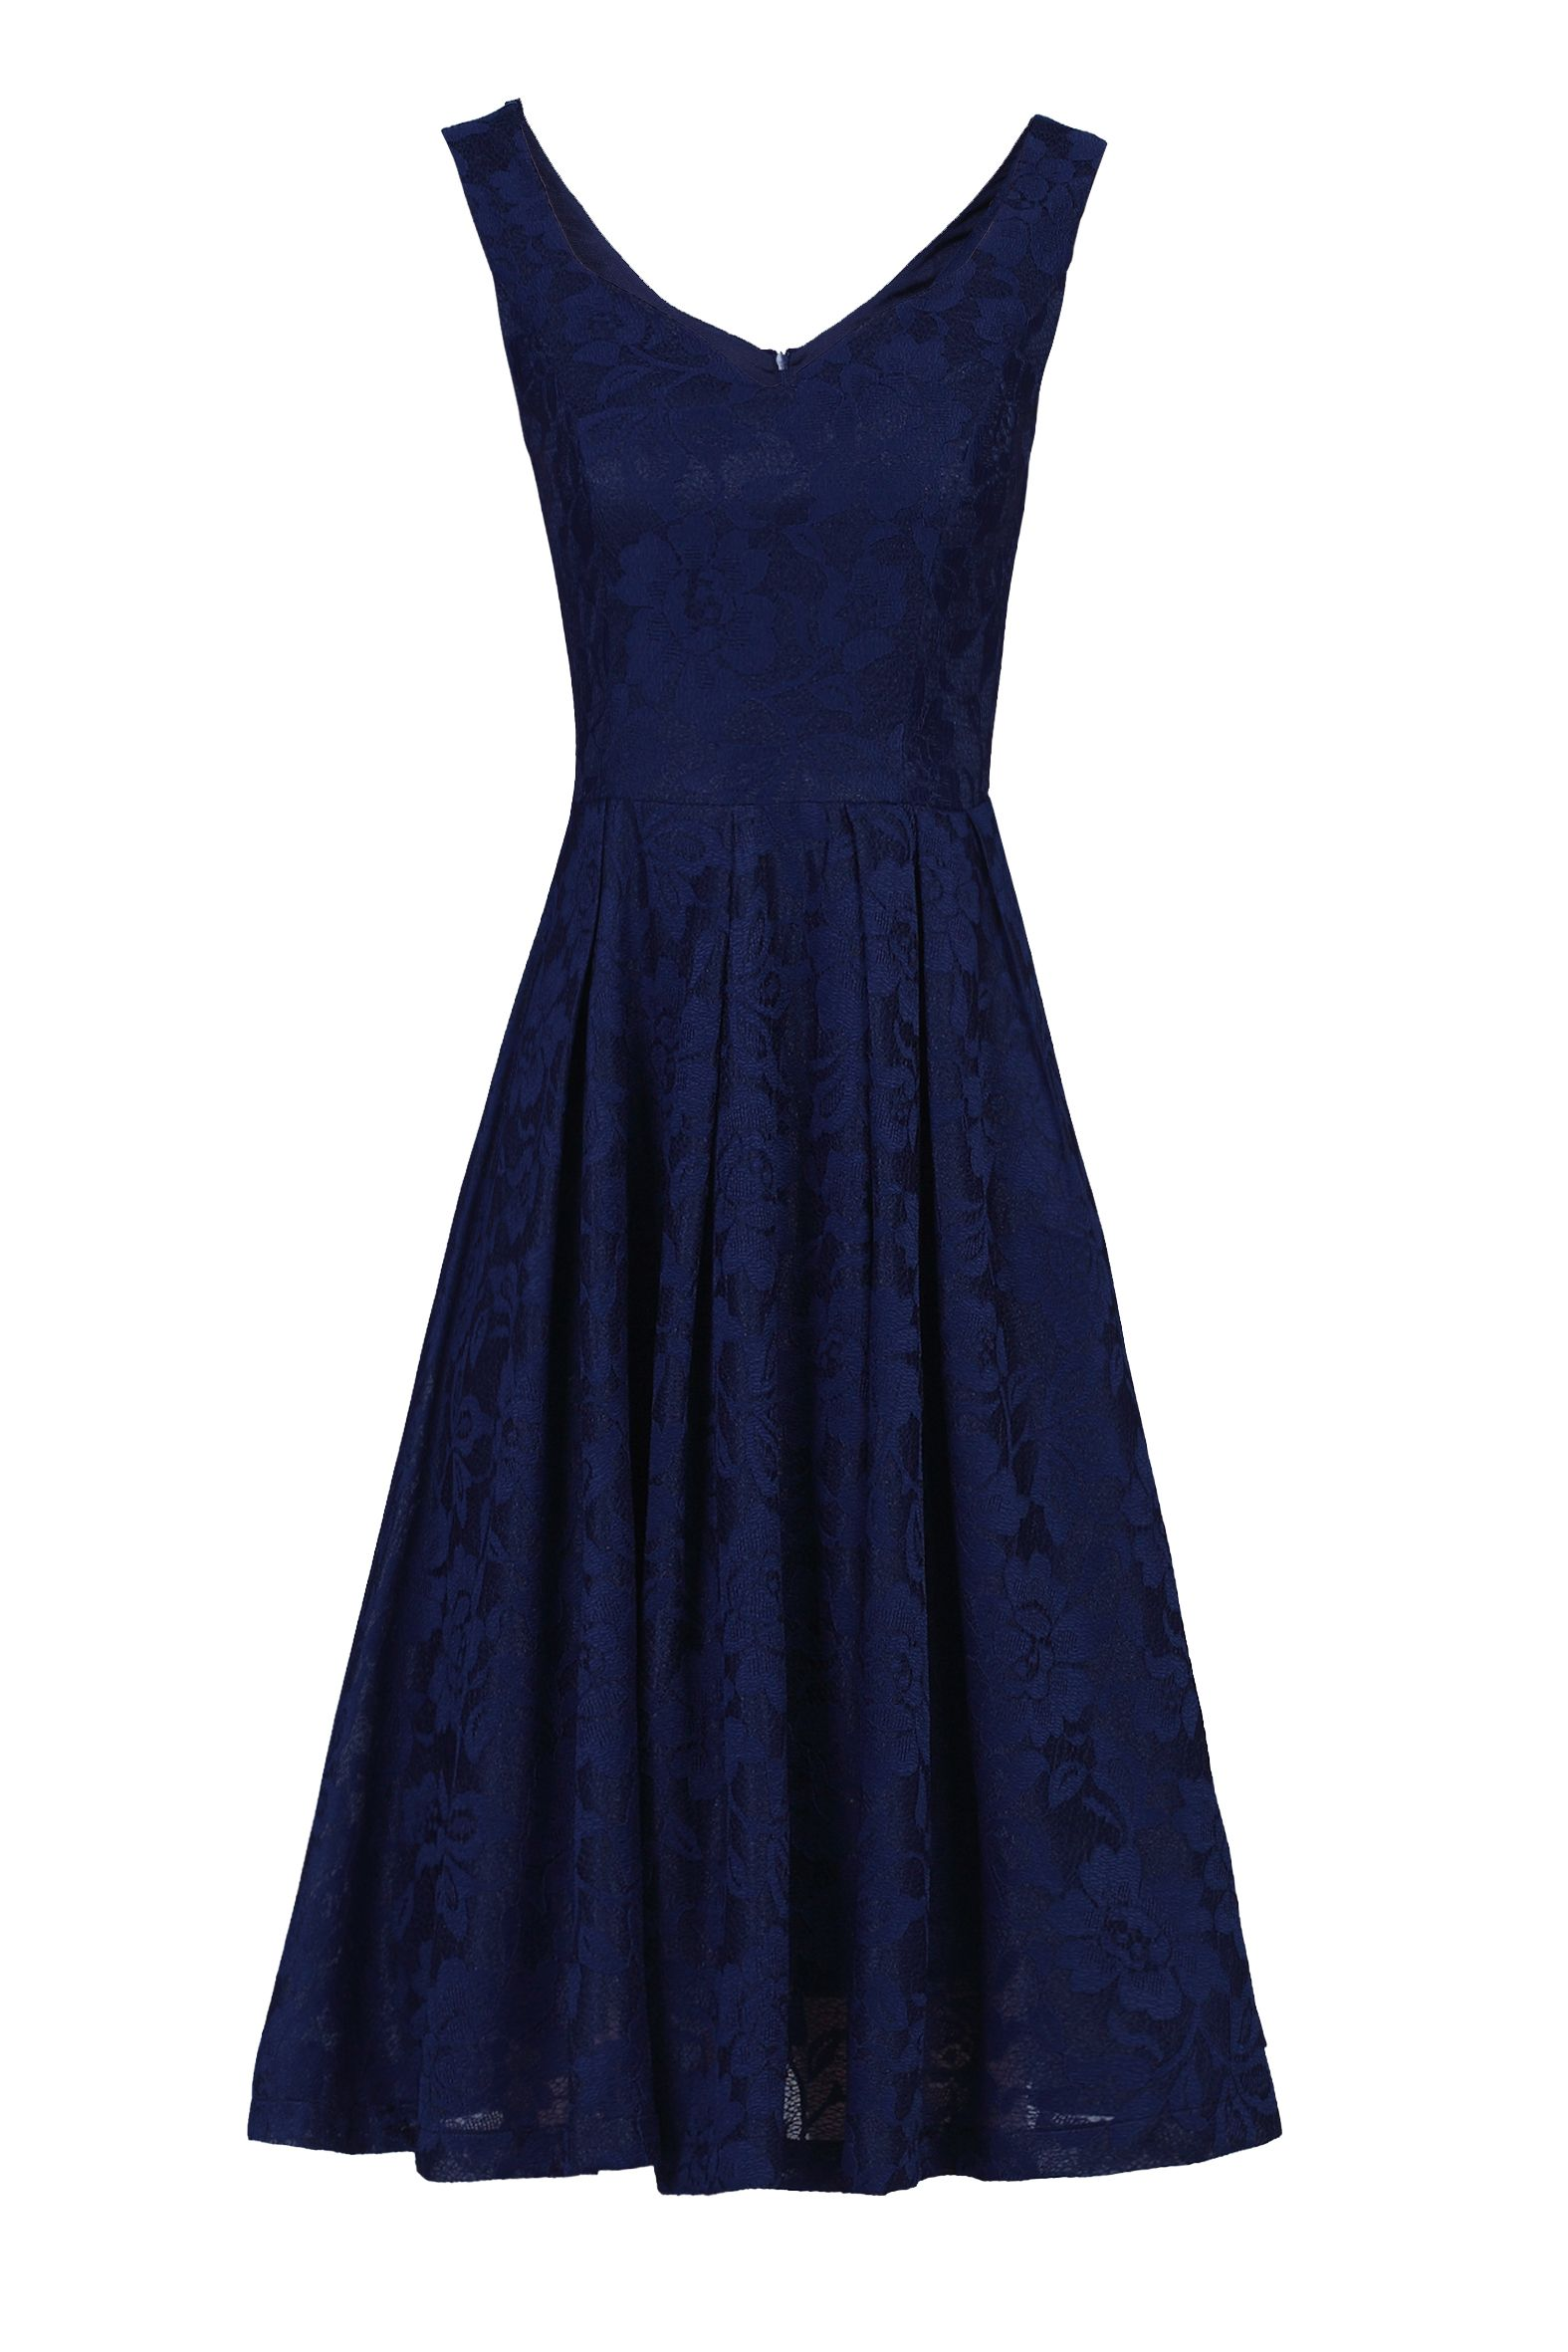 Jolie Moi Lace Bonded Sweetheart Neck Dress, Blue